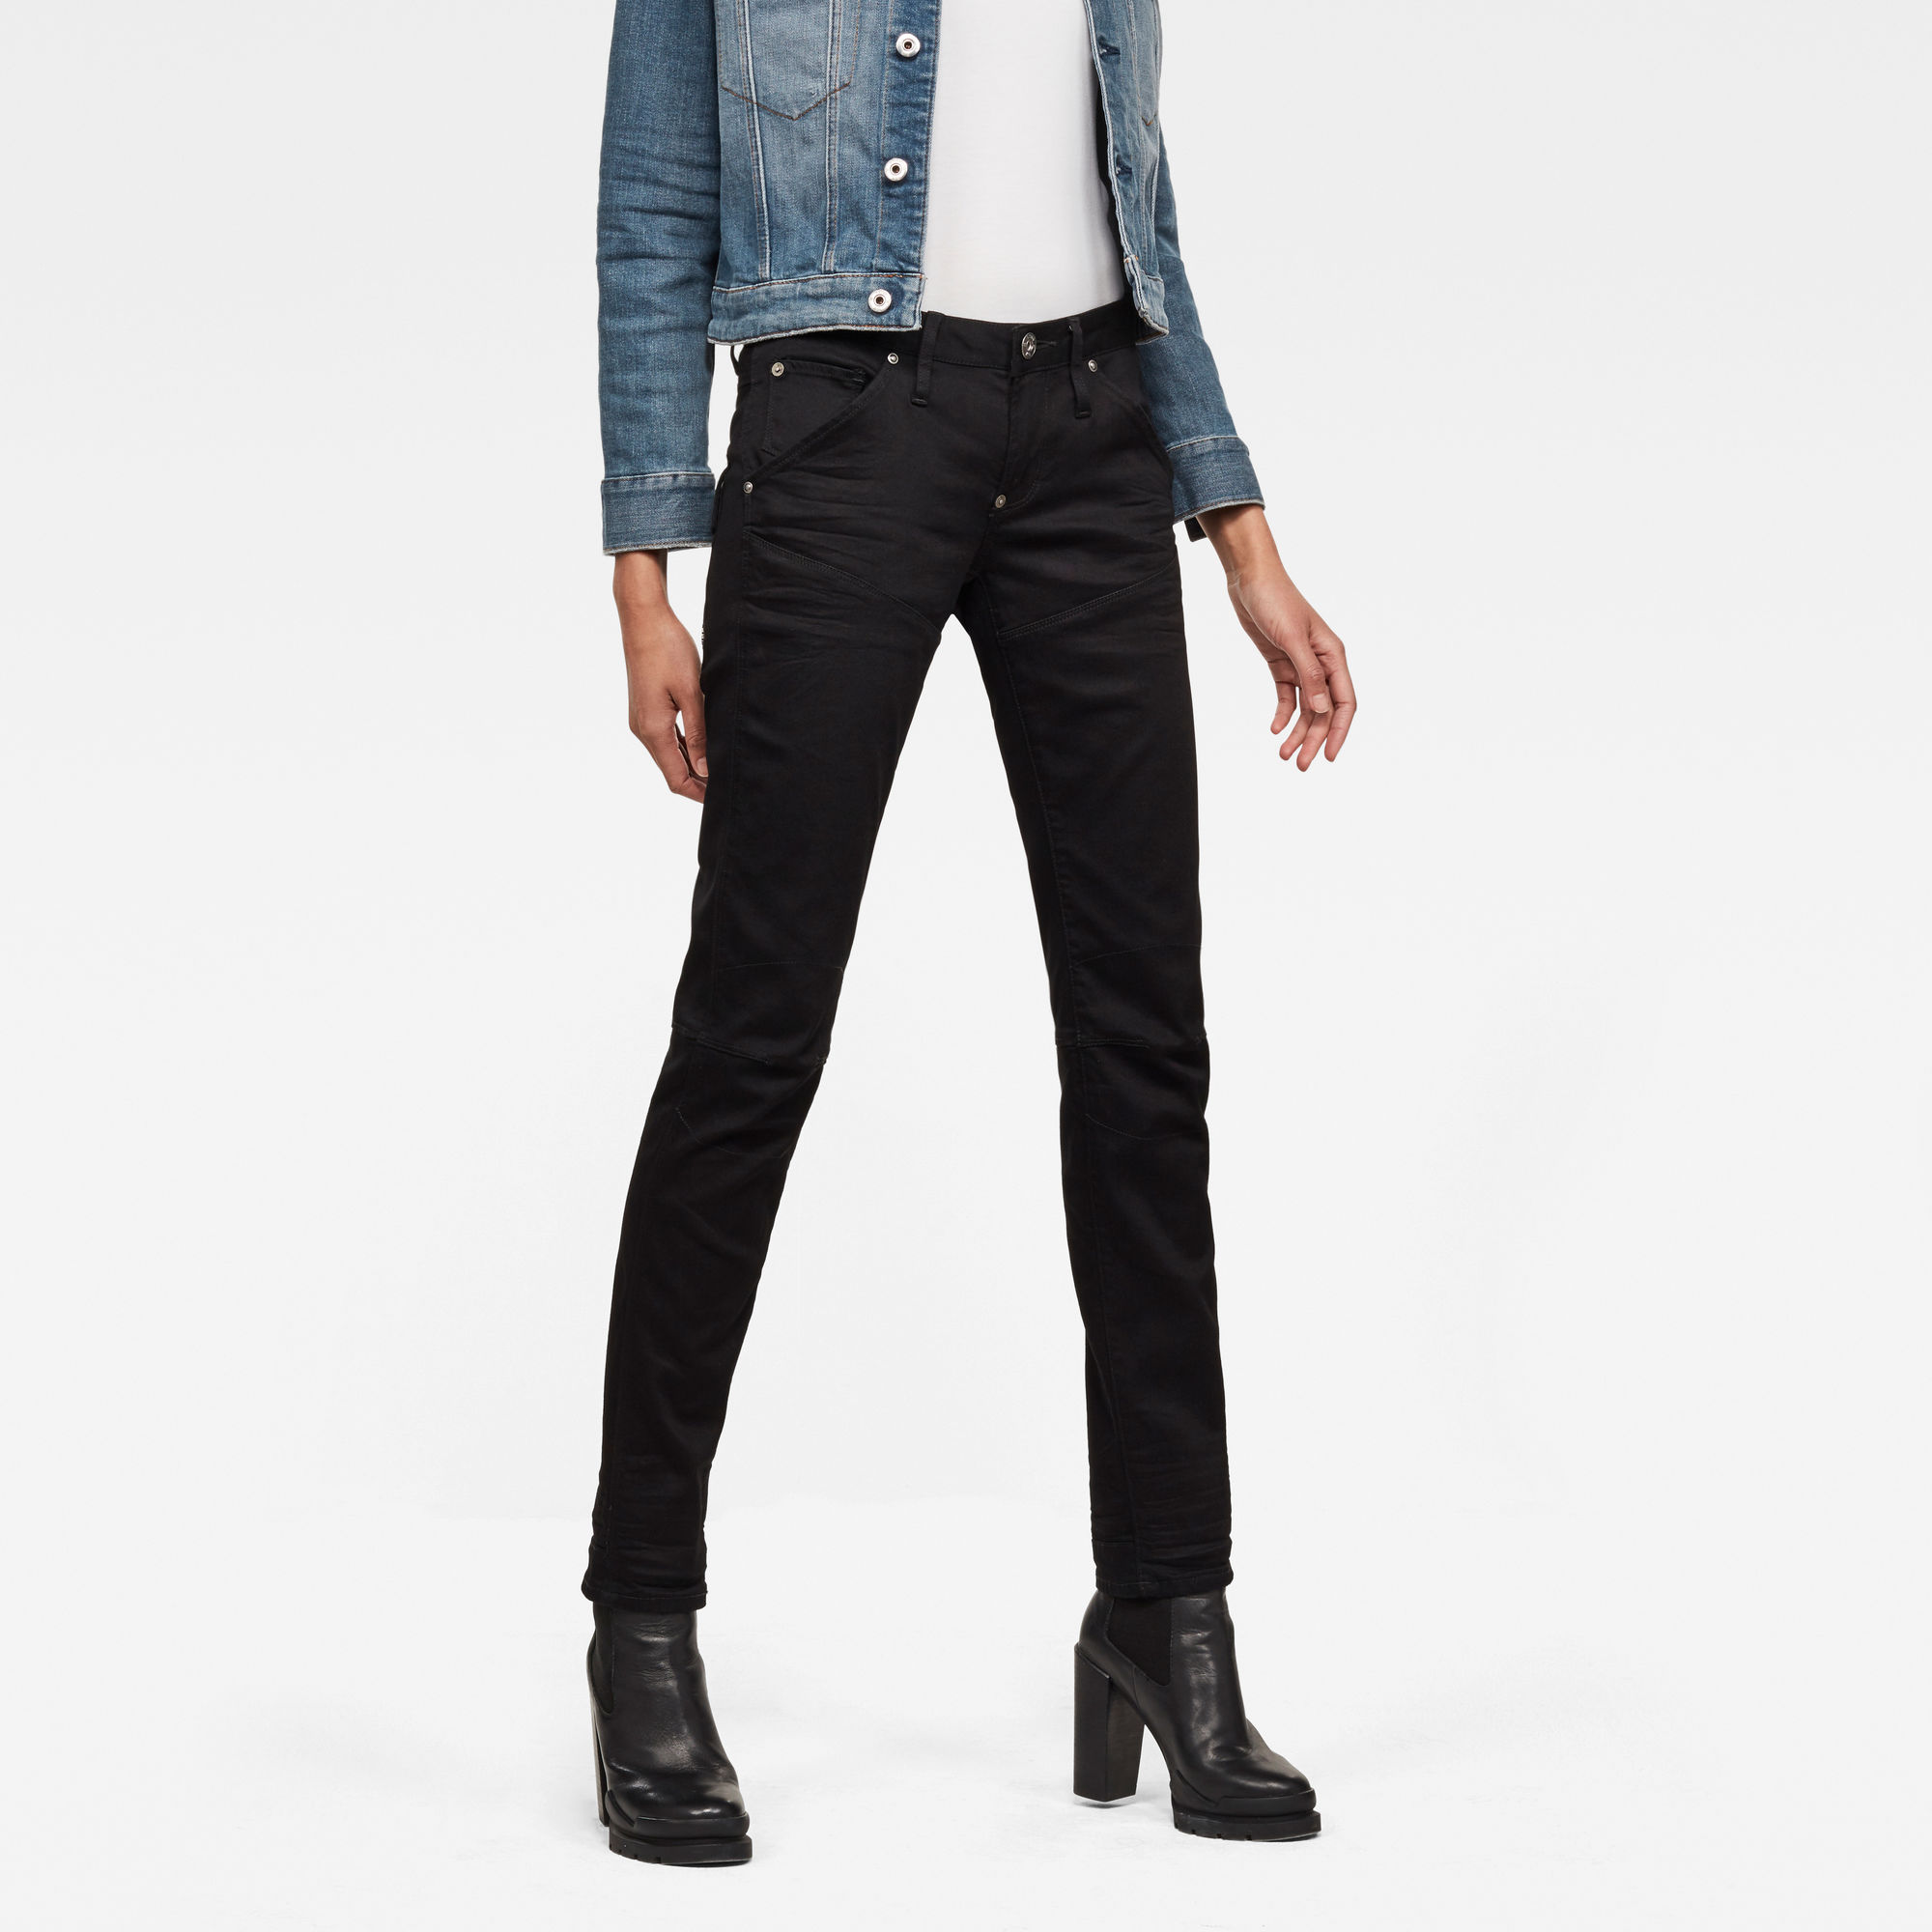 Image of G Star Raw 5620 G-Star Elwoodd Heritage Ann Embro Tapered Jeans